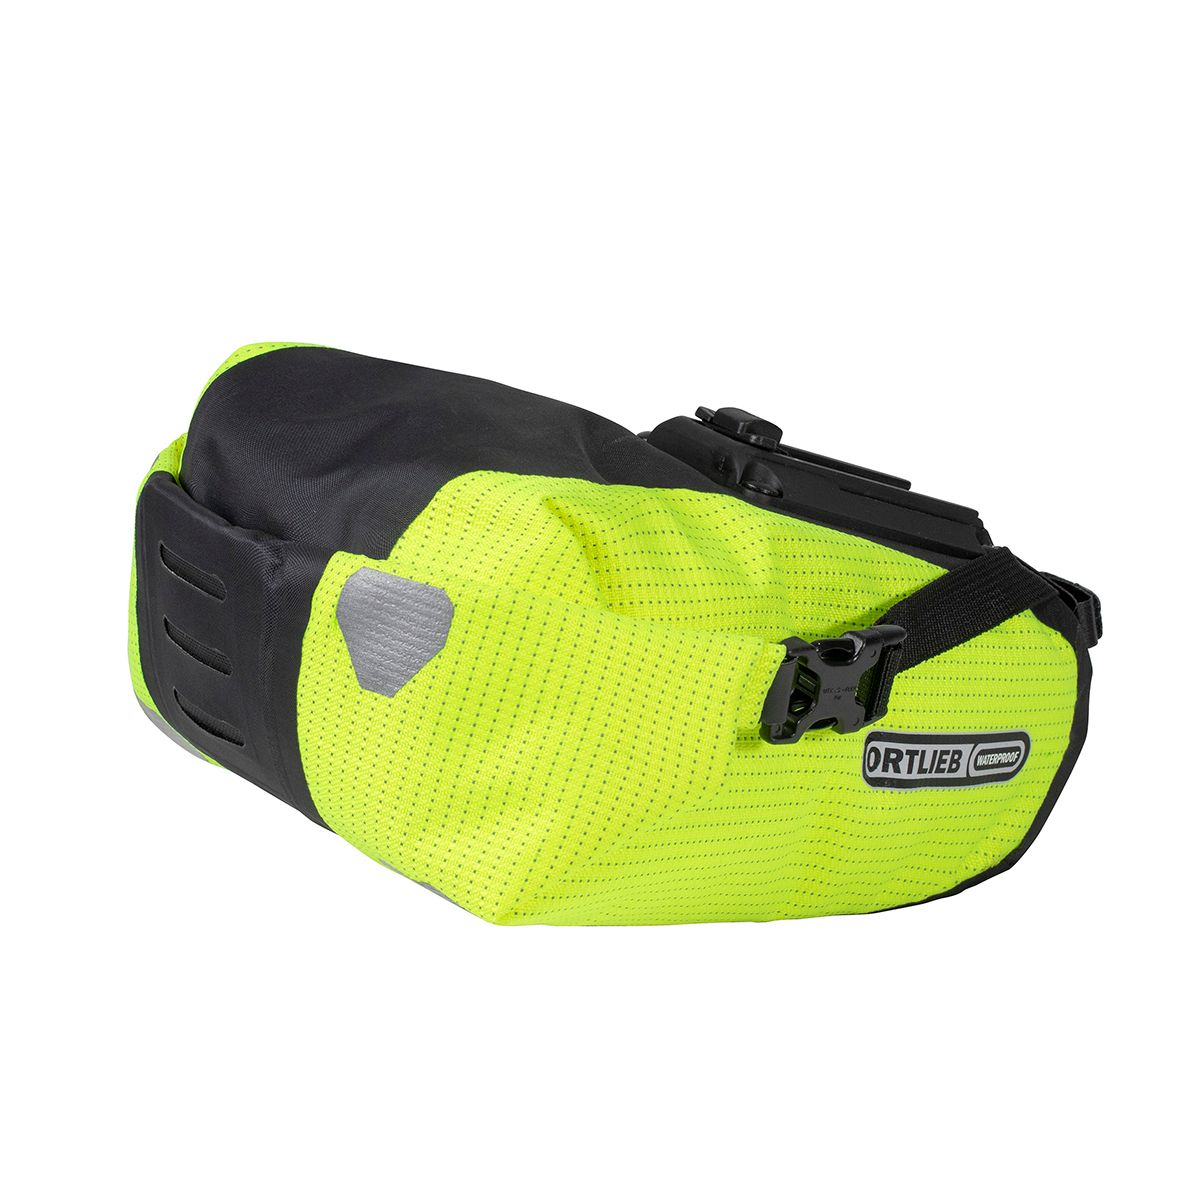 SADDLE-BAG TWO HIGH VISIBILITY Satteltasche